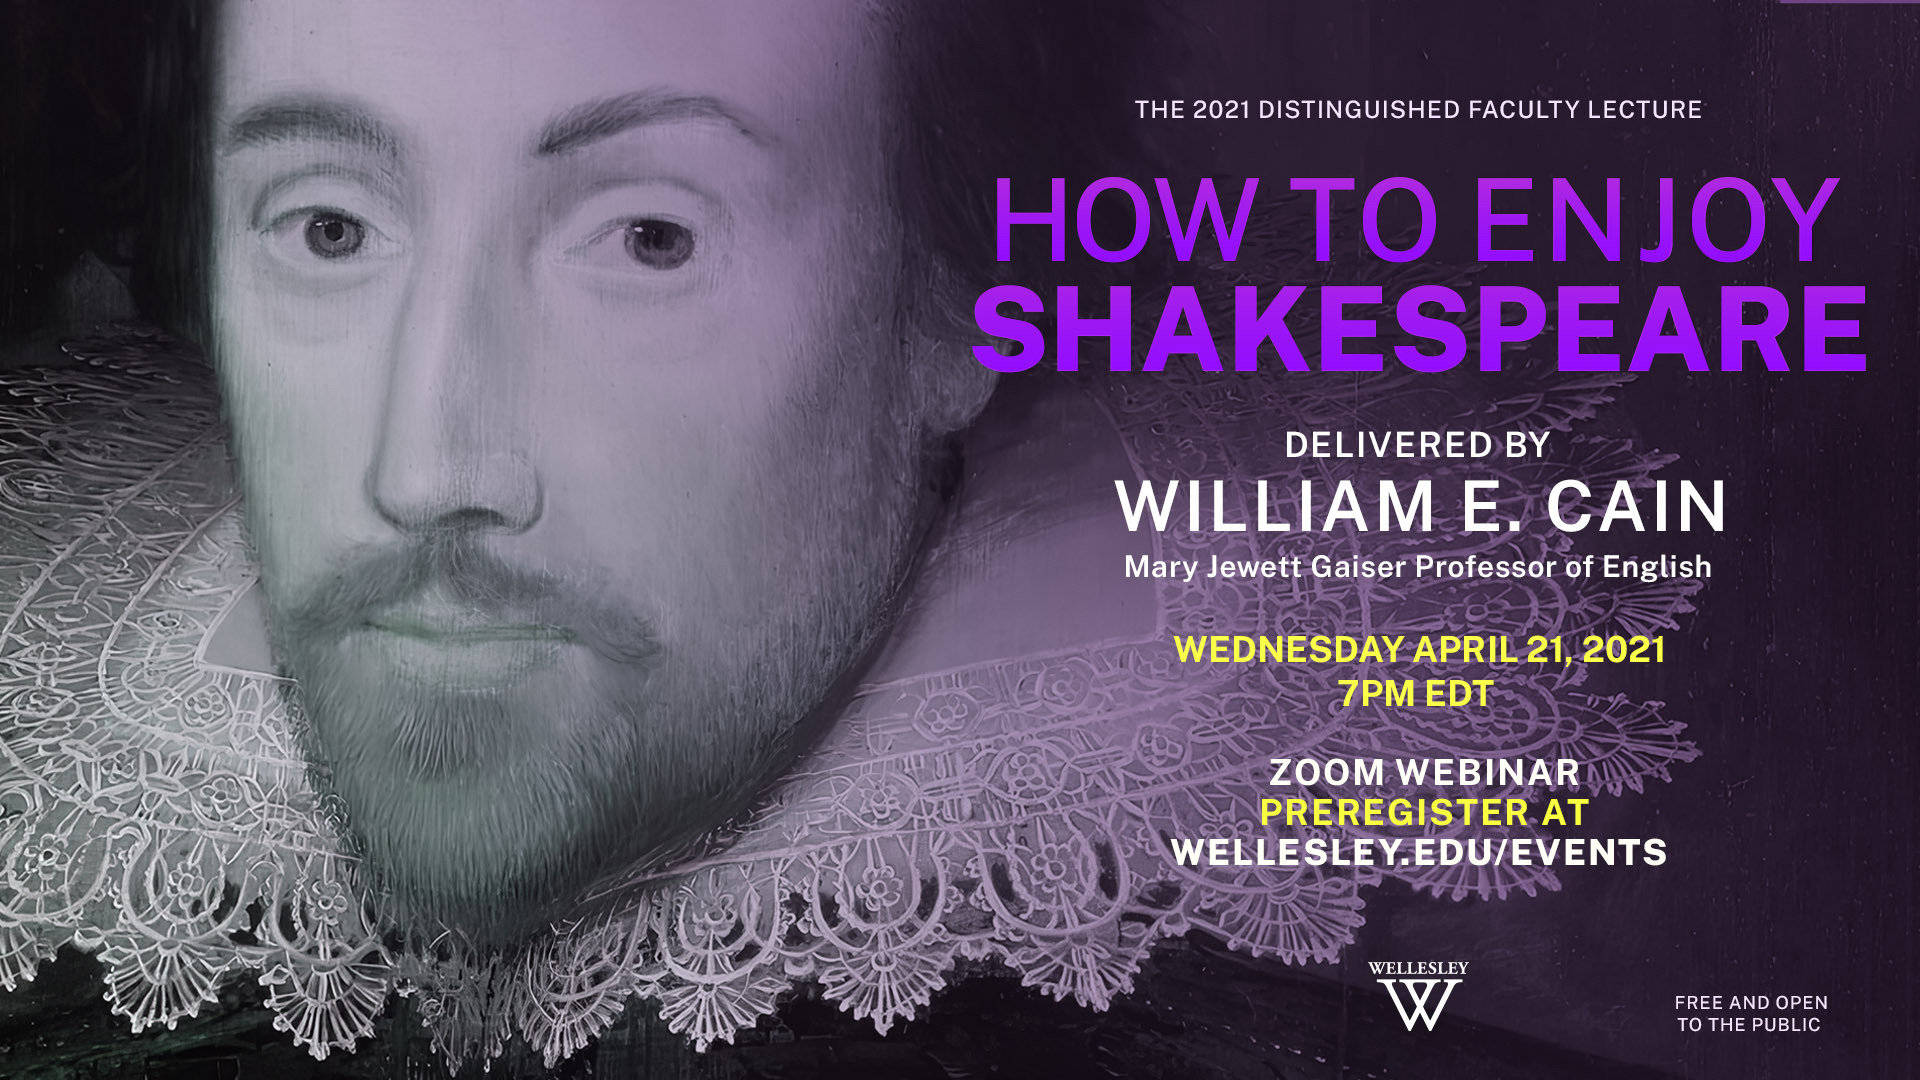 Flyer for Prof. Cain's Distinguished Faculty Lecture on Shakespeare.